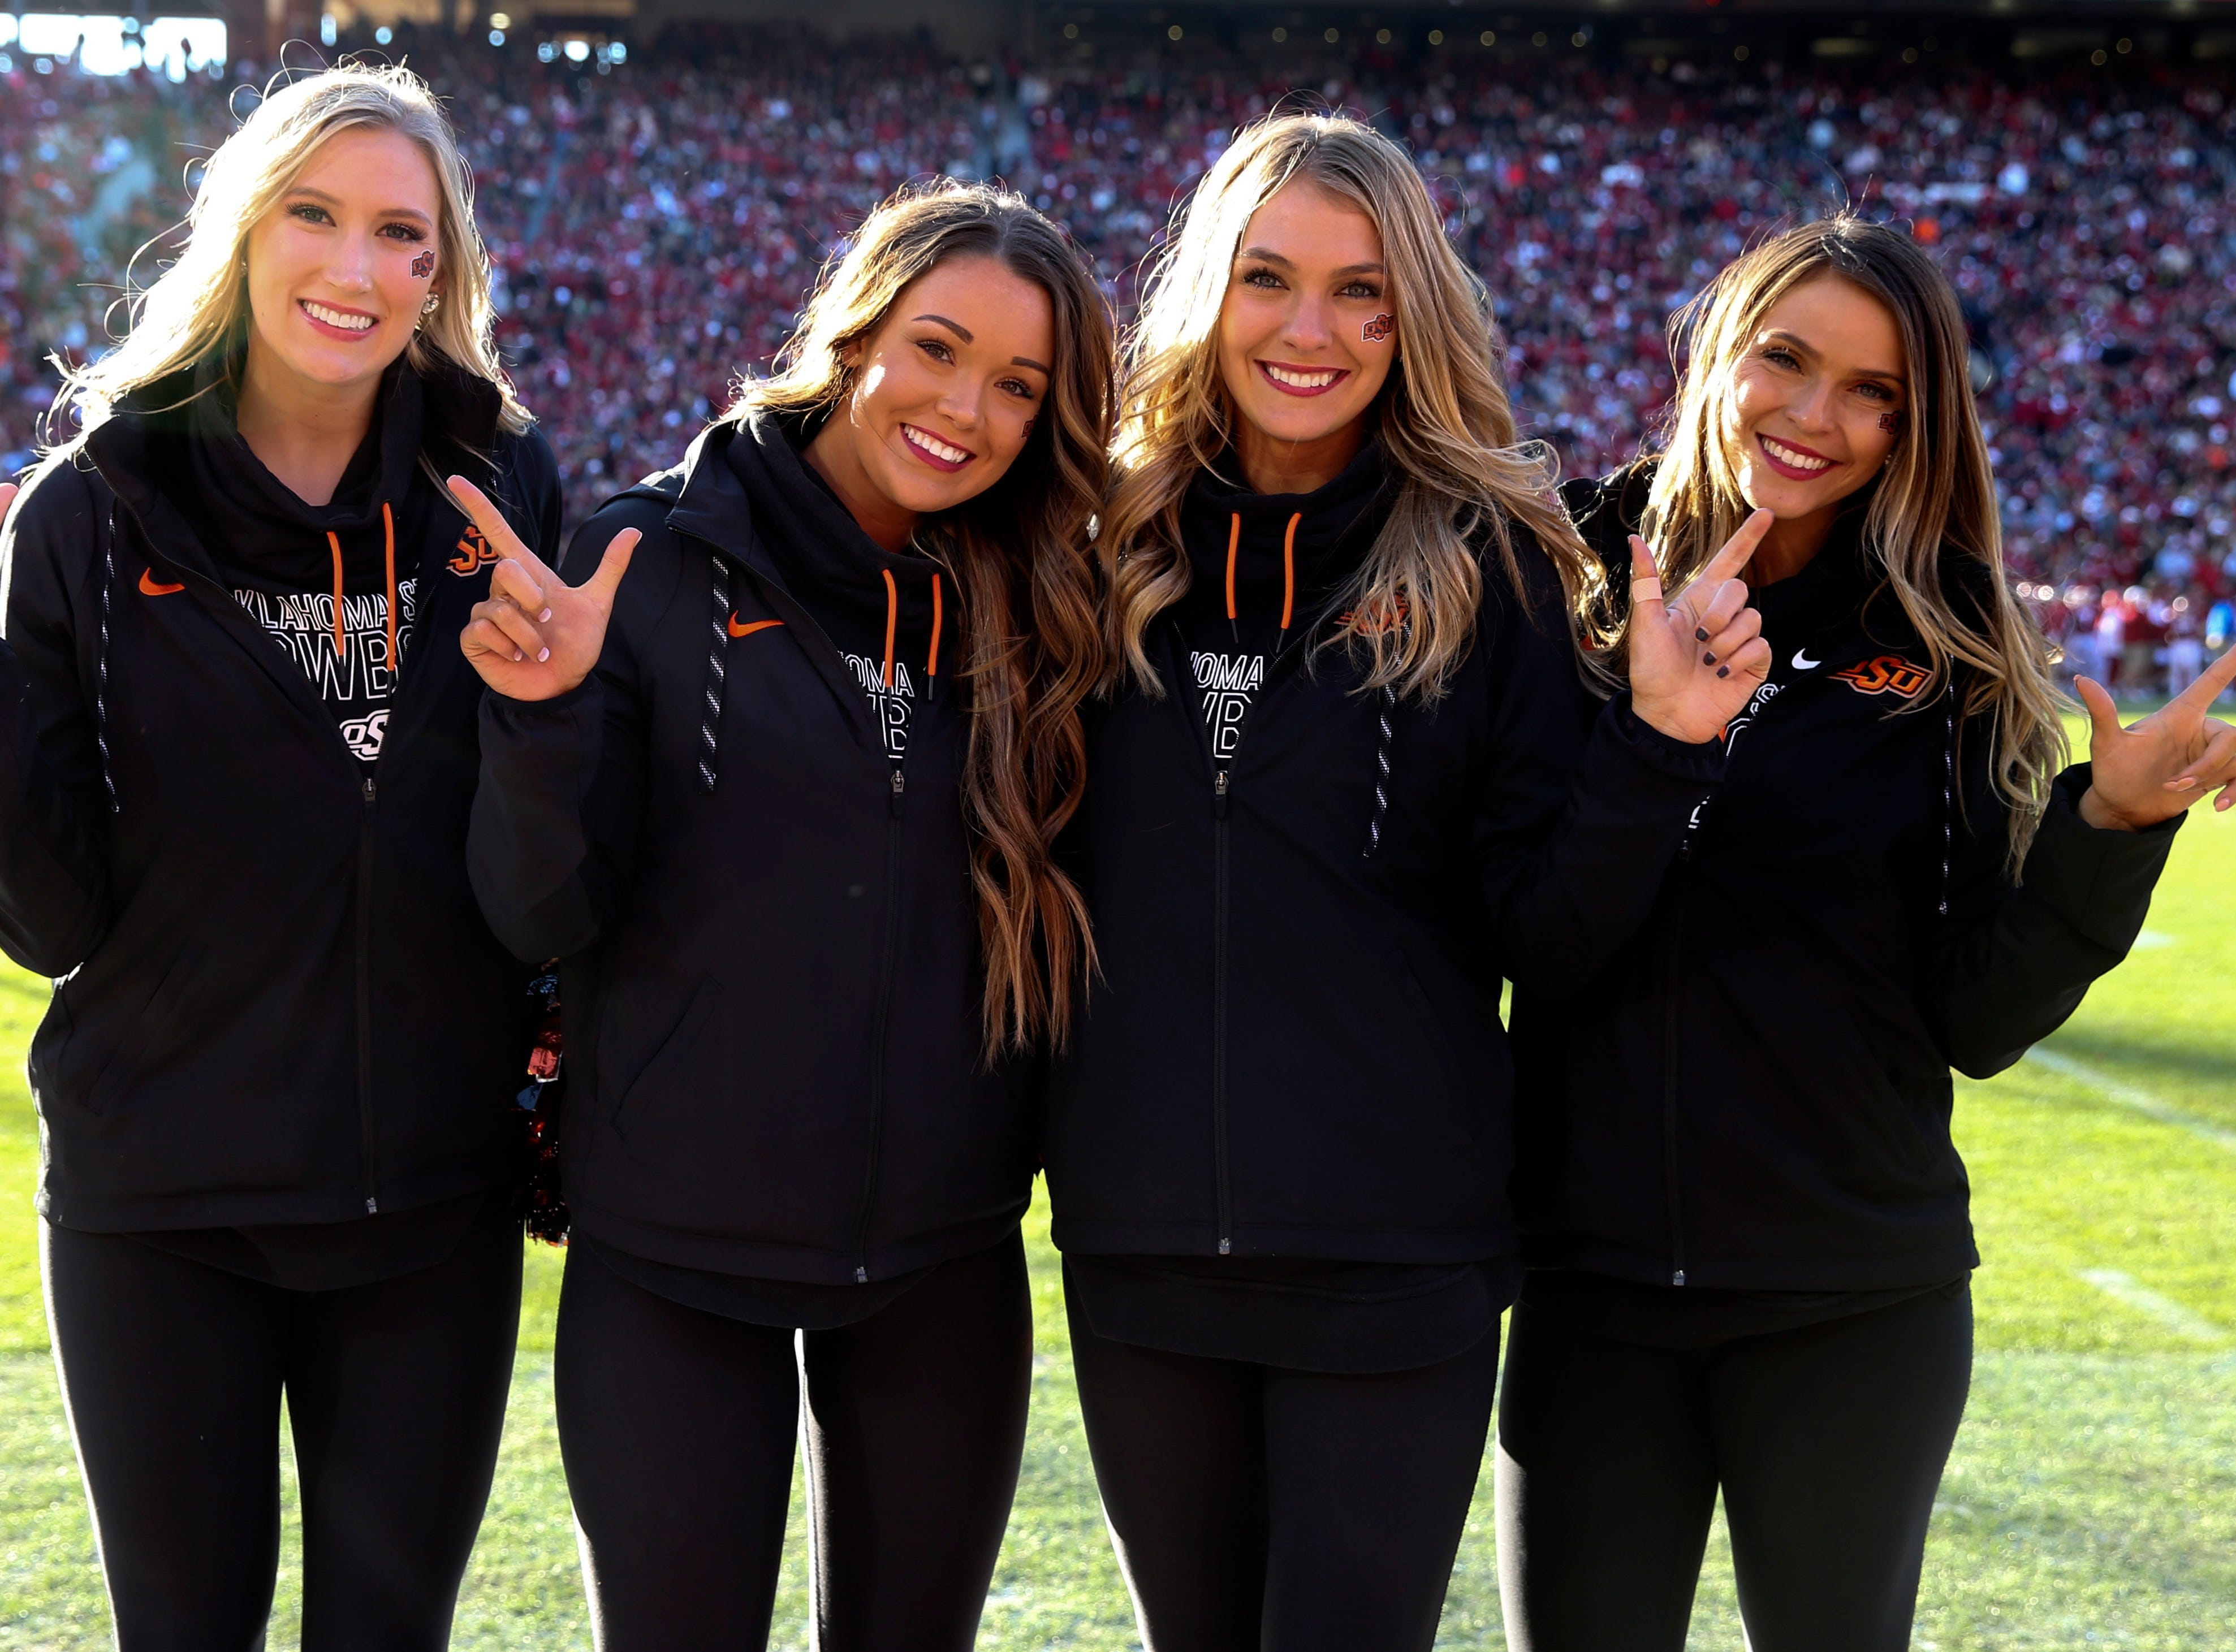 Week 11: Members of the Oklahoma State Cowboys pom squad pose for a photo during the first half against the Oklahoma Sooners at Gaylord Family-Oklahoma Memorial Stadium.